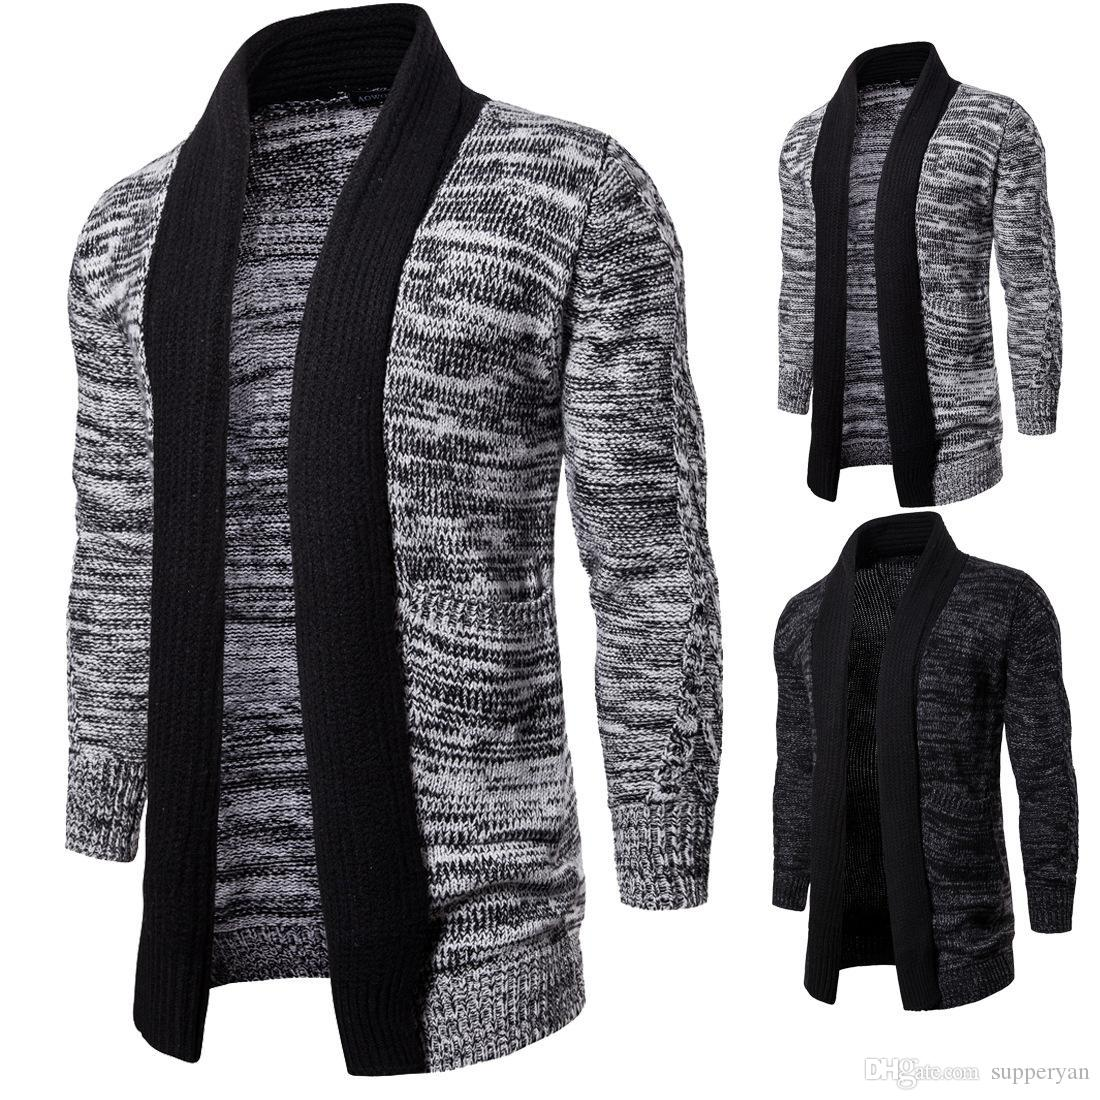 Men/'s Women Cardigan Knit Jumper Sweater Button Up V-Neck Casual Tops Coat M-2XL